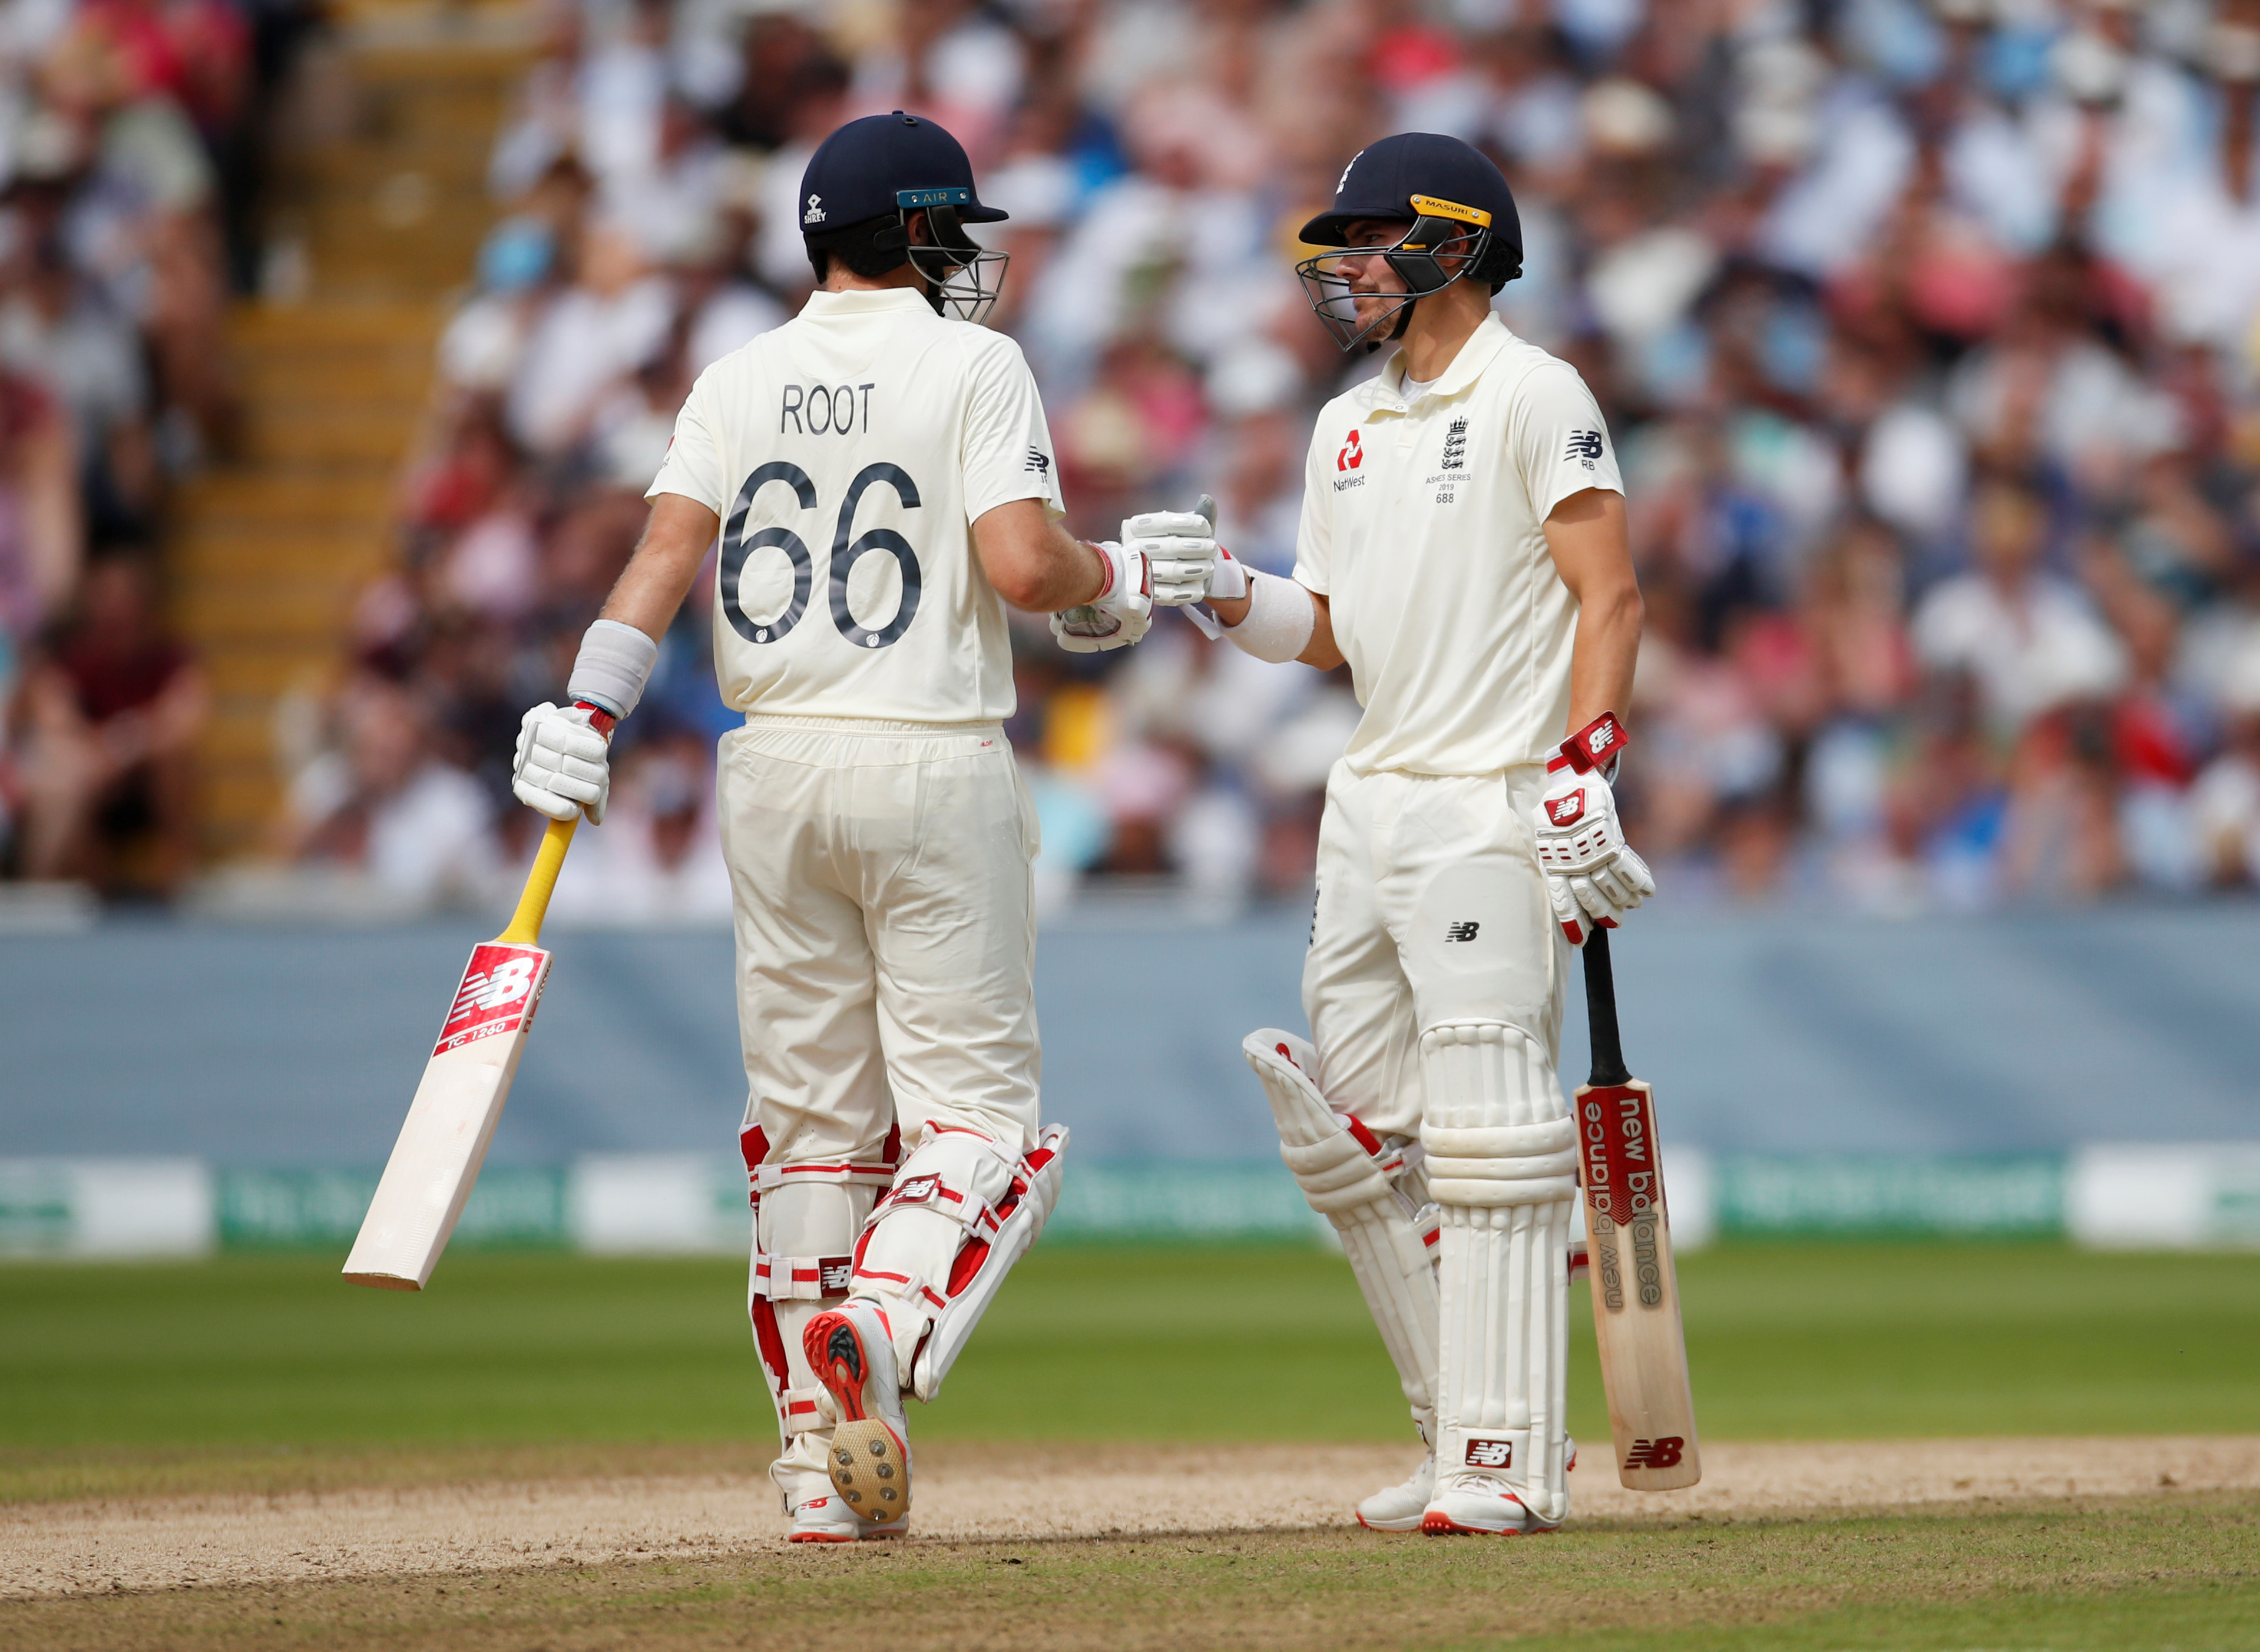 Cricket - Ashes 2019 - First Test - England v Australia - Edgbaston, Birmingham, Britain - August 2, 2019   England's Joe Root and Rory Burns touch gloves during the match   Action Images via Reuters/Andrew Boyers